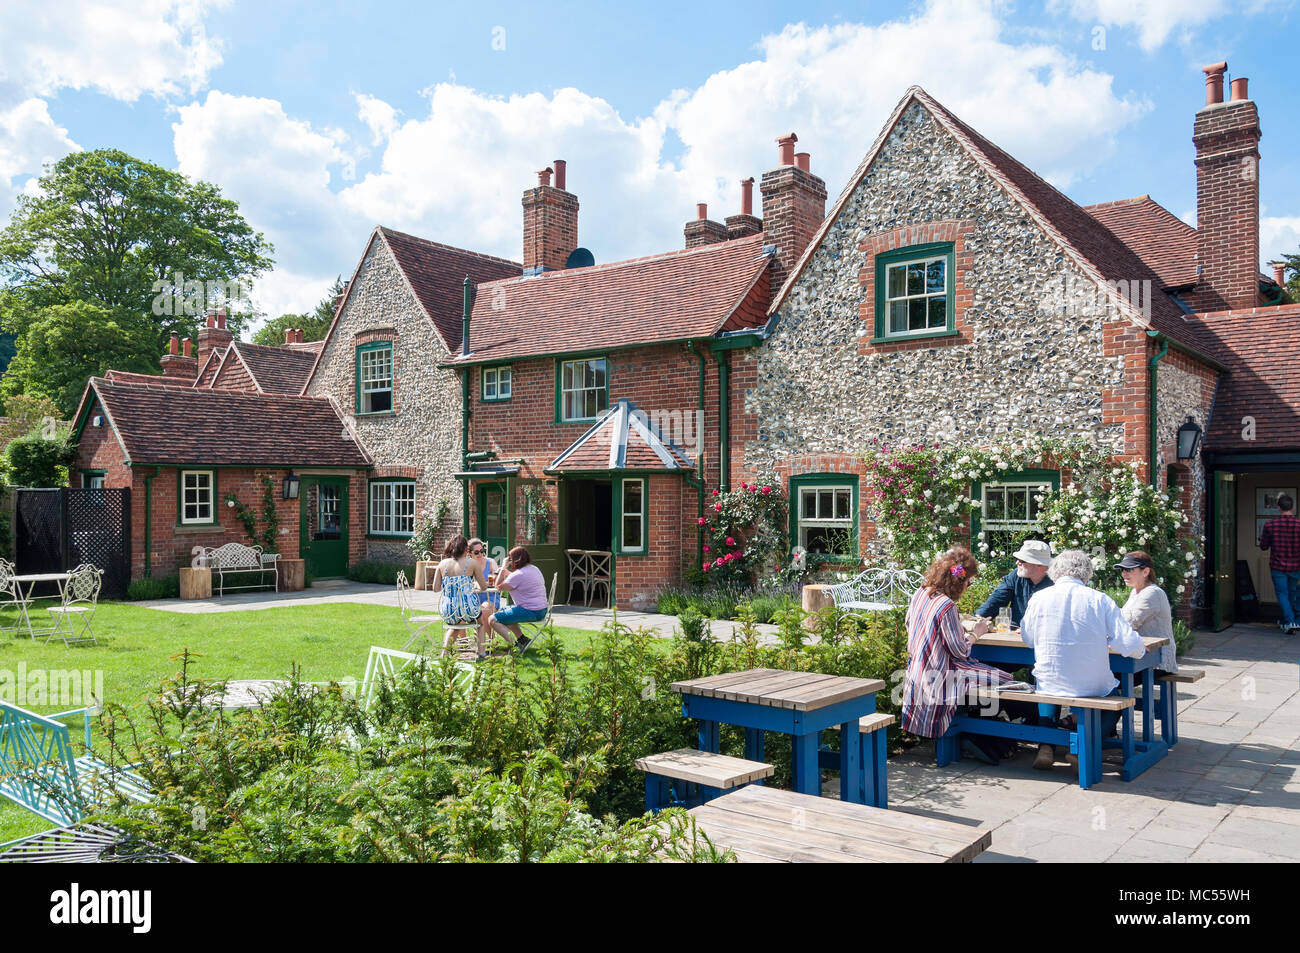 Beer garden at 19th century Stag & Huntsman Pub, Hambleden, Buckinghamshire, England, United Kingdom - Stock Image